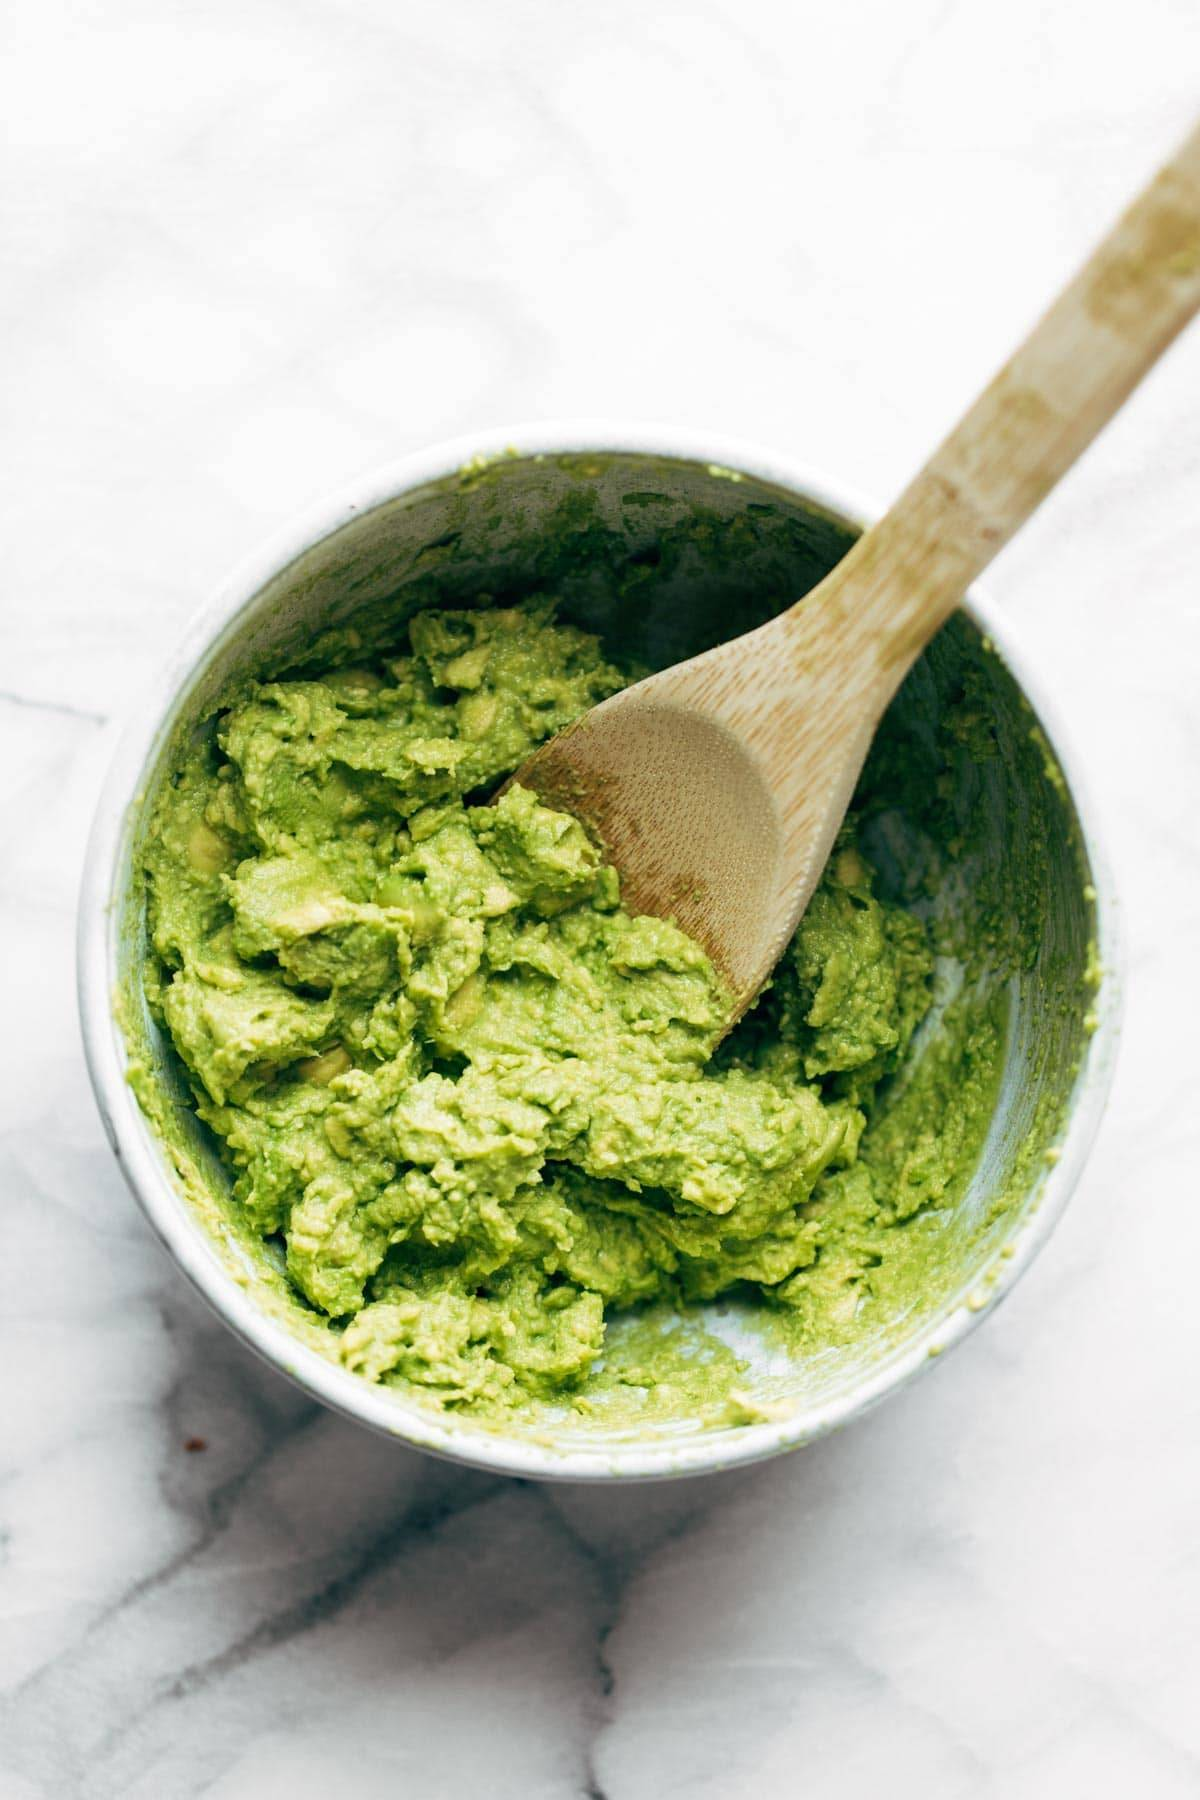 Avocado mashed in a bowl.